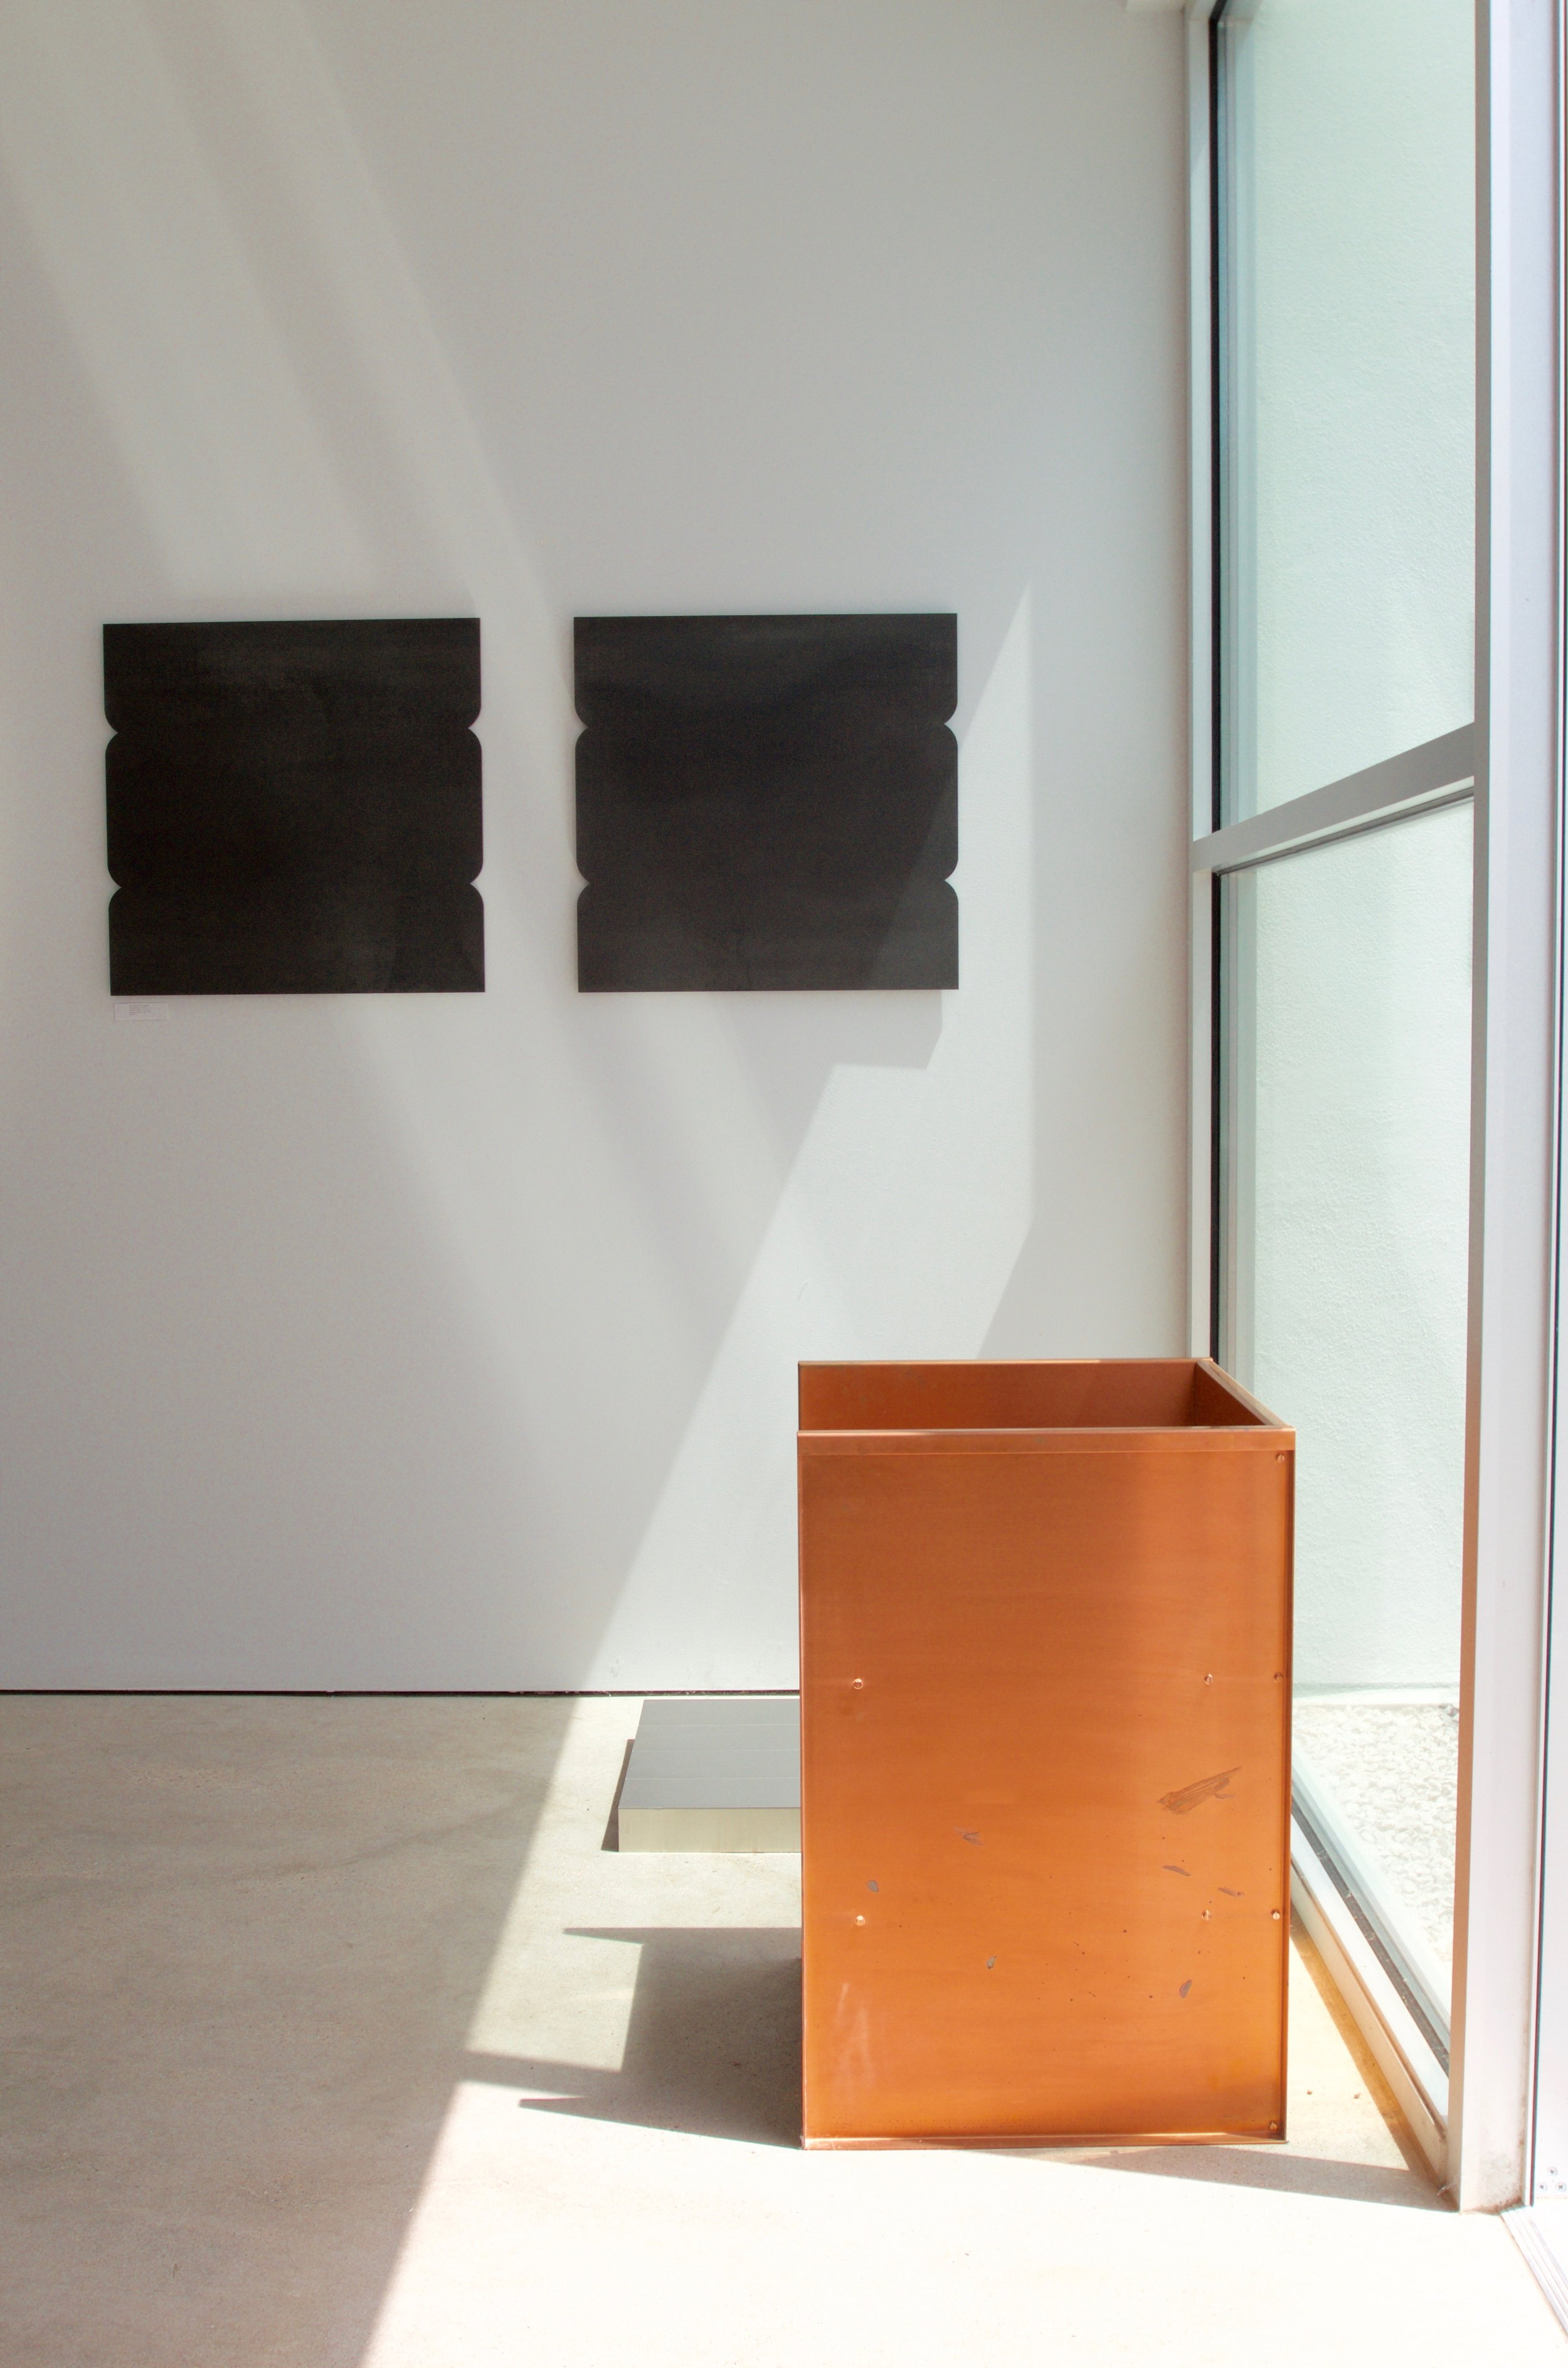 Cecilia Vissers / Blacksod Bay (diptych) / Donald Judd Multiple #1 (1967) & Copper chair